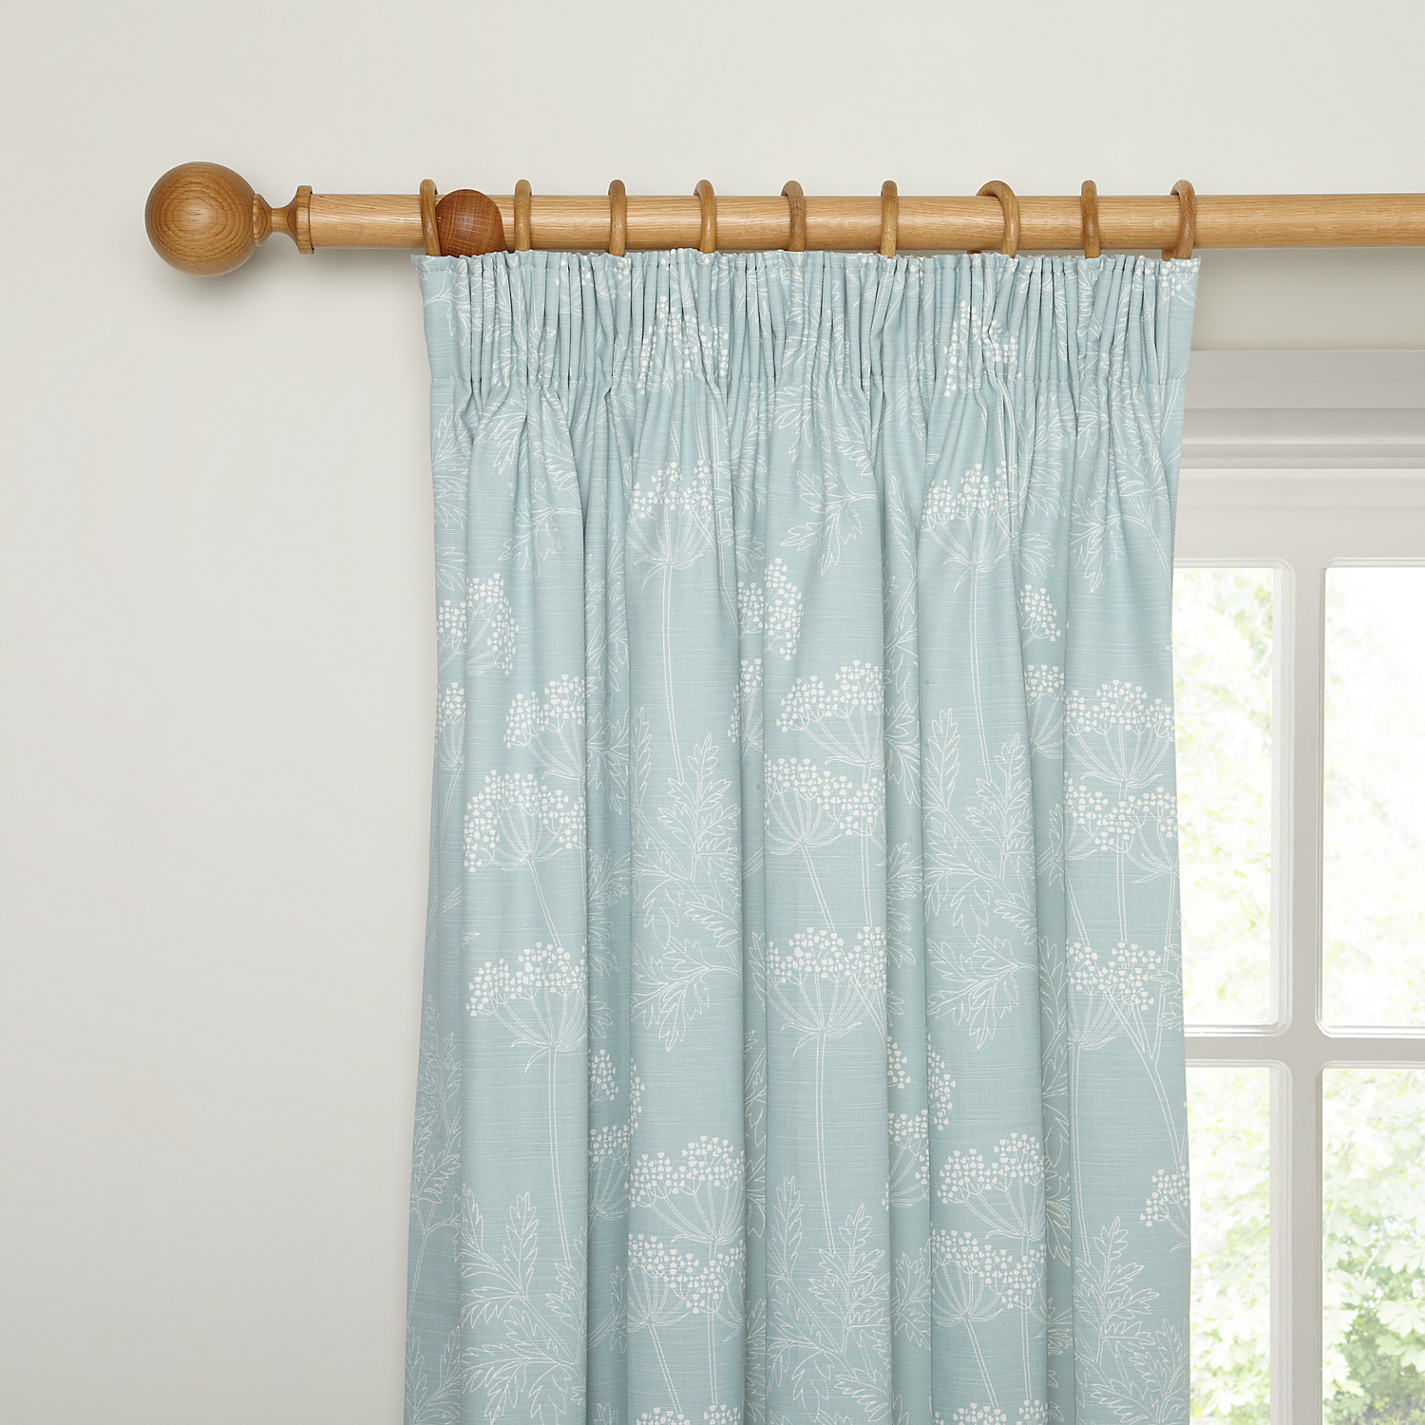 Buy John Lewis Cow Parsley Lined Pencil Pleat Curtains Online At Johnlewis